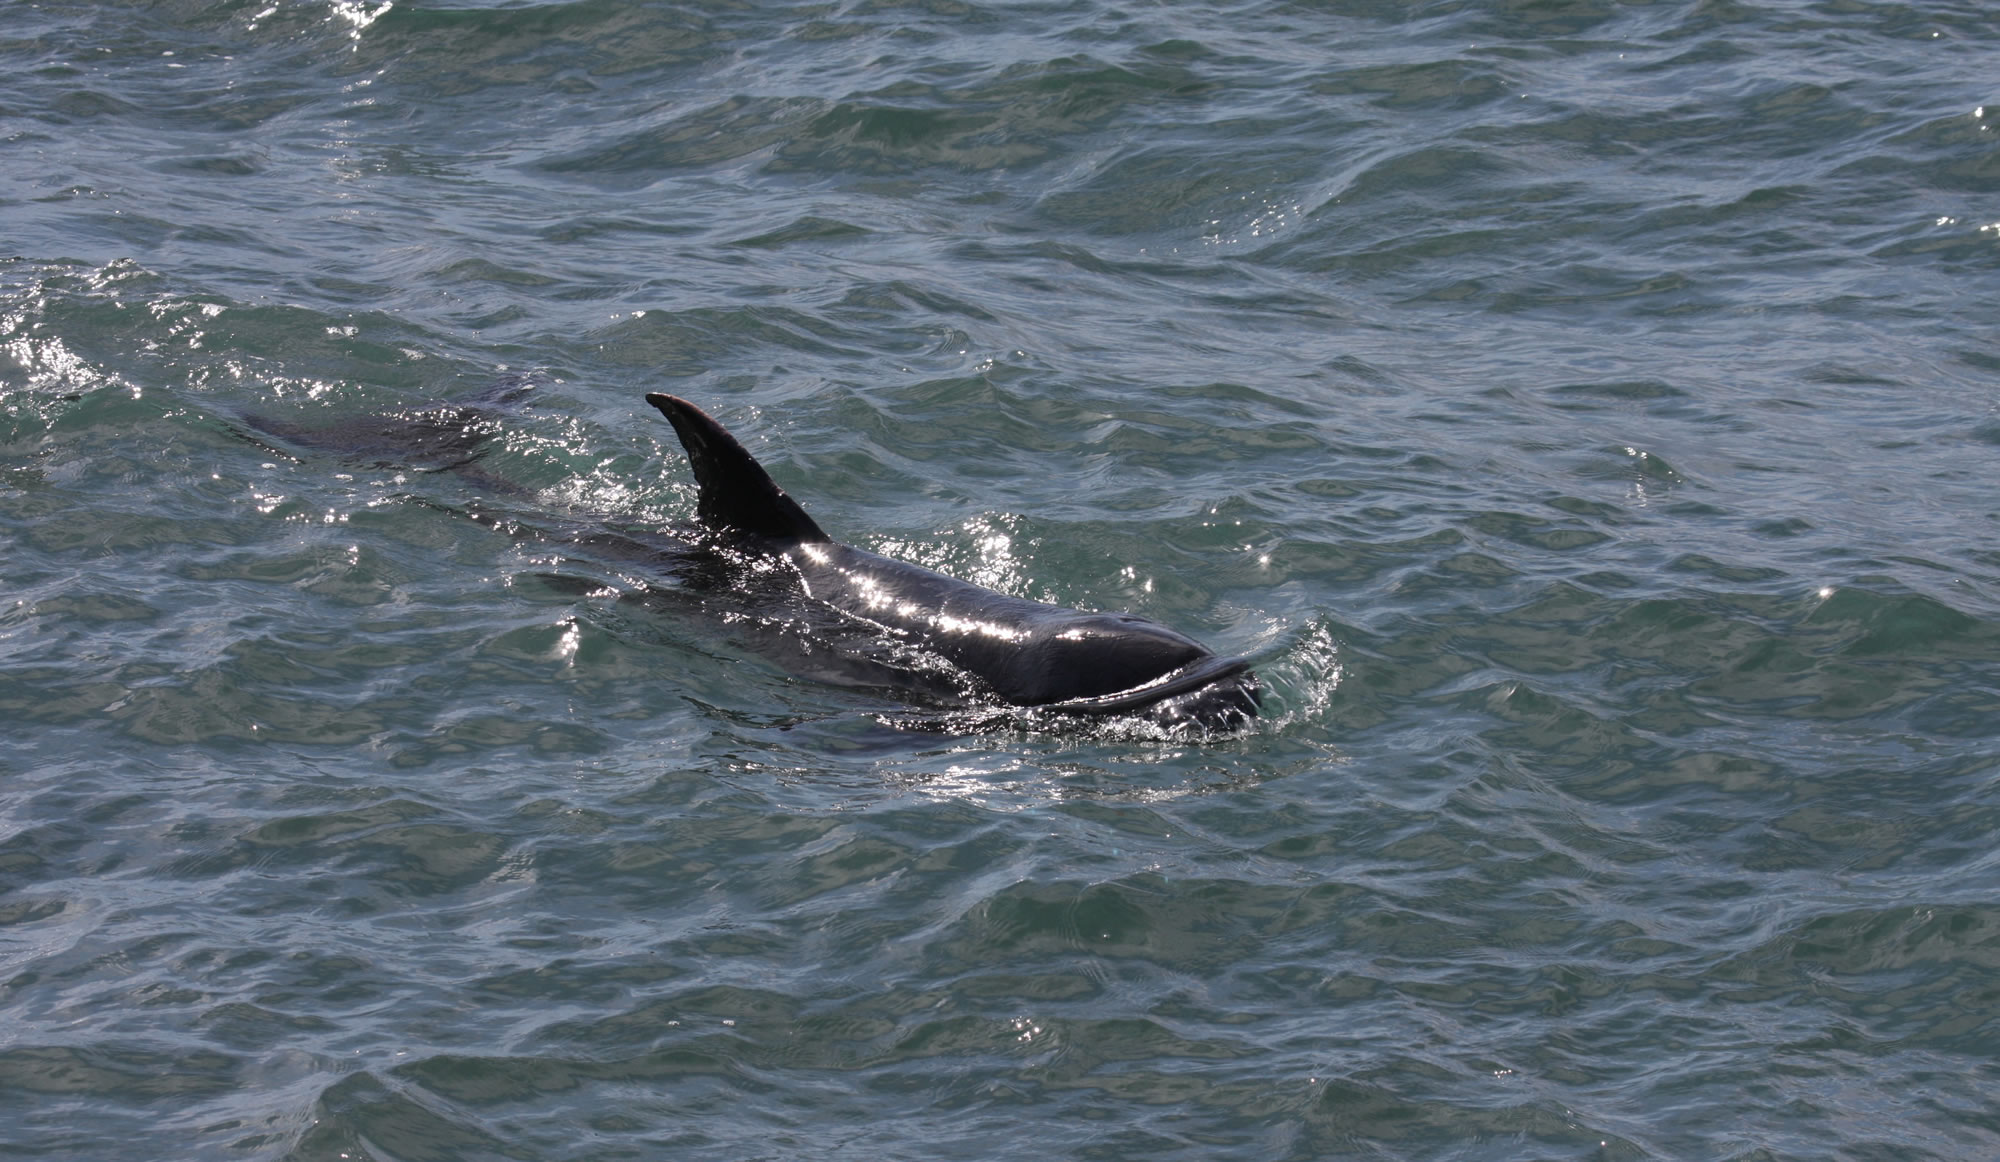 Pygmy killer whale - Whale & Dolphin Conservation USA